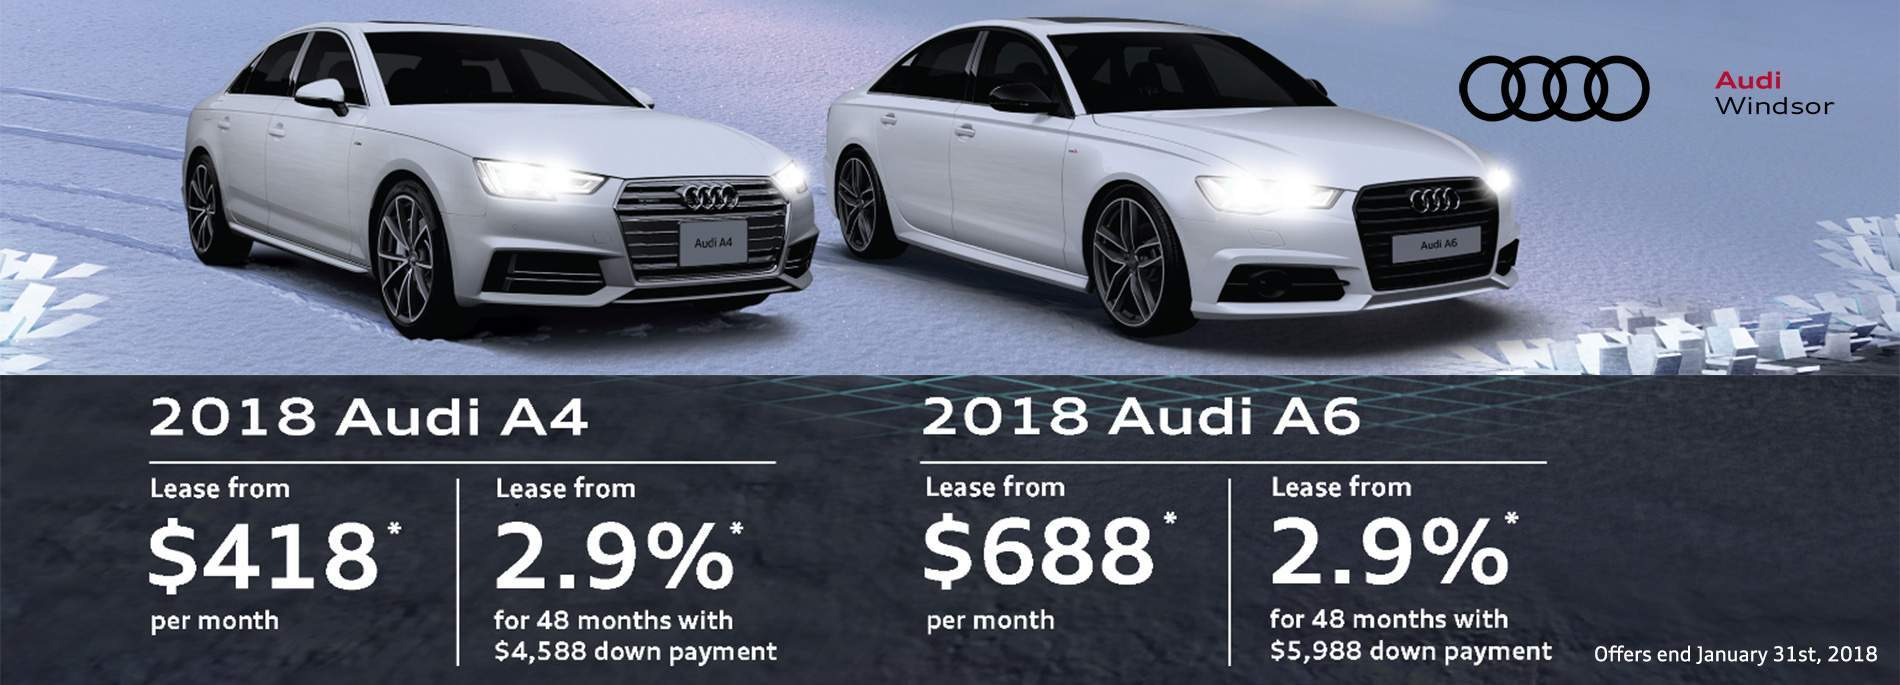 Audi Windsor January 2018 Sales Event